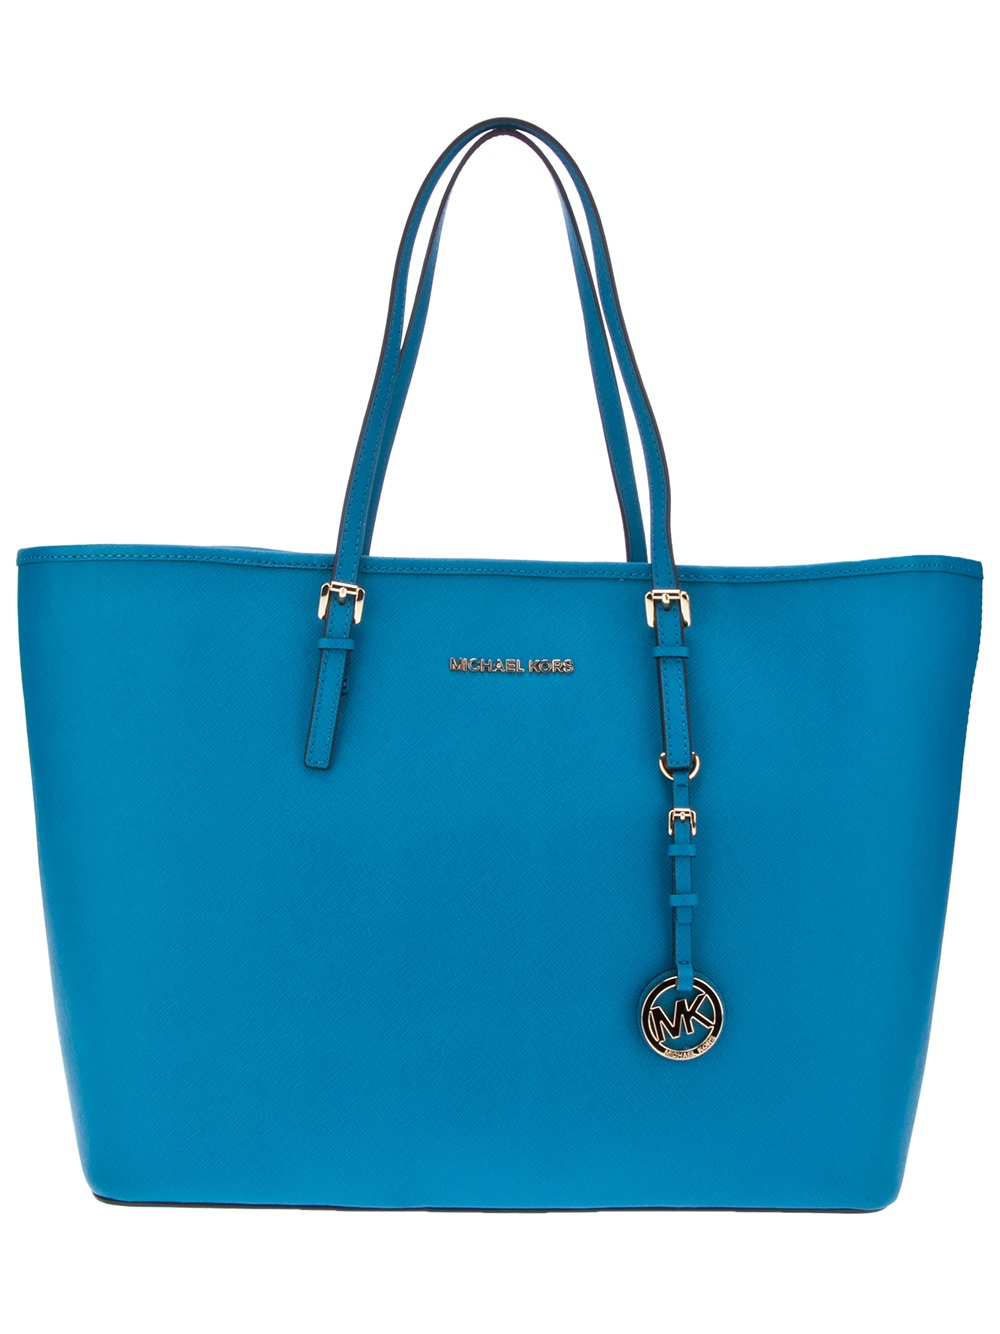 michael kors leather shopper tote in blue turquoise lyst. Black Bedroom Furniture Sets. Home Design Ideas